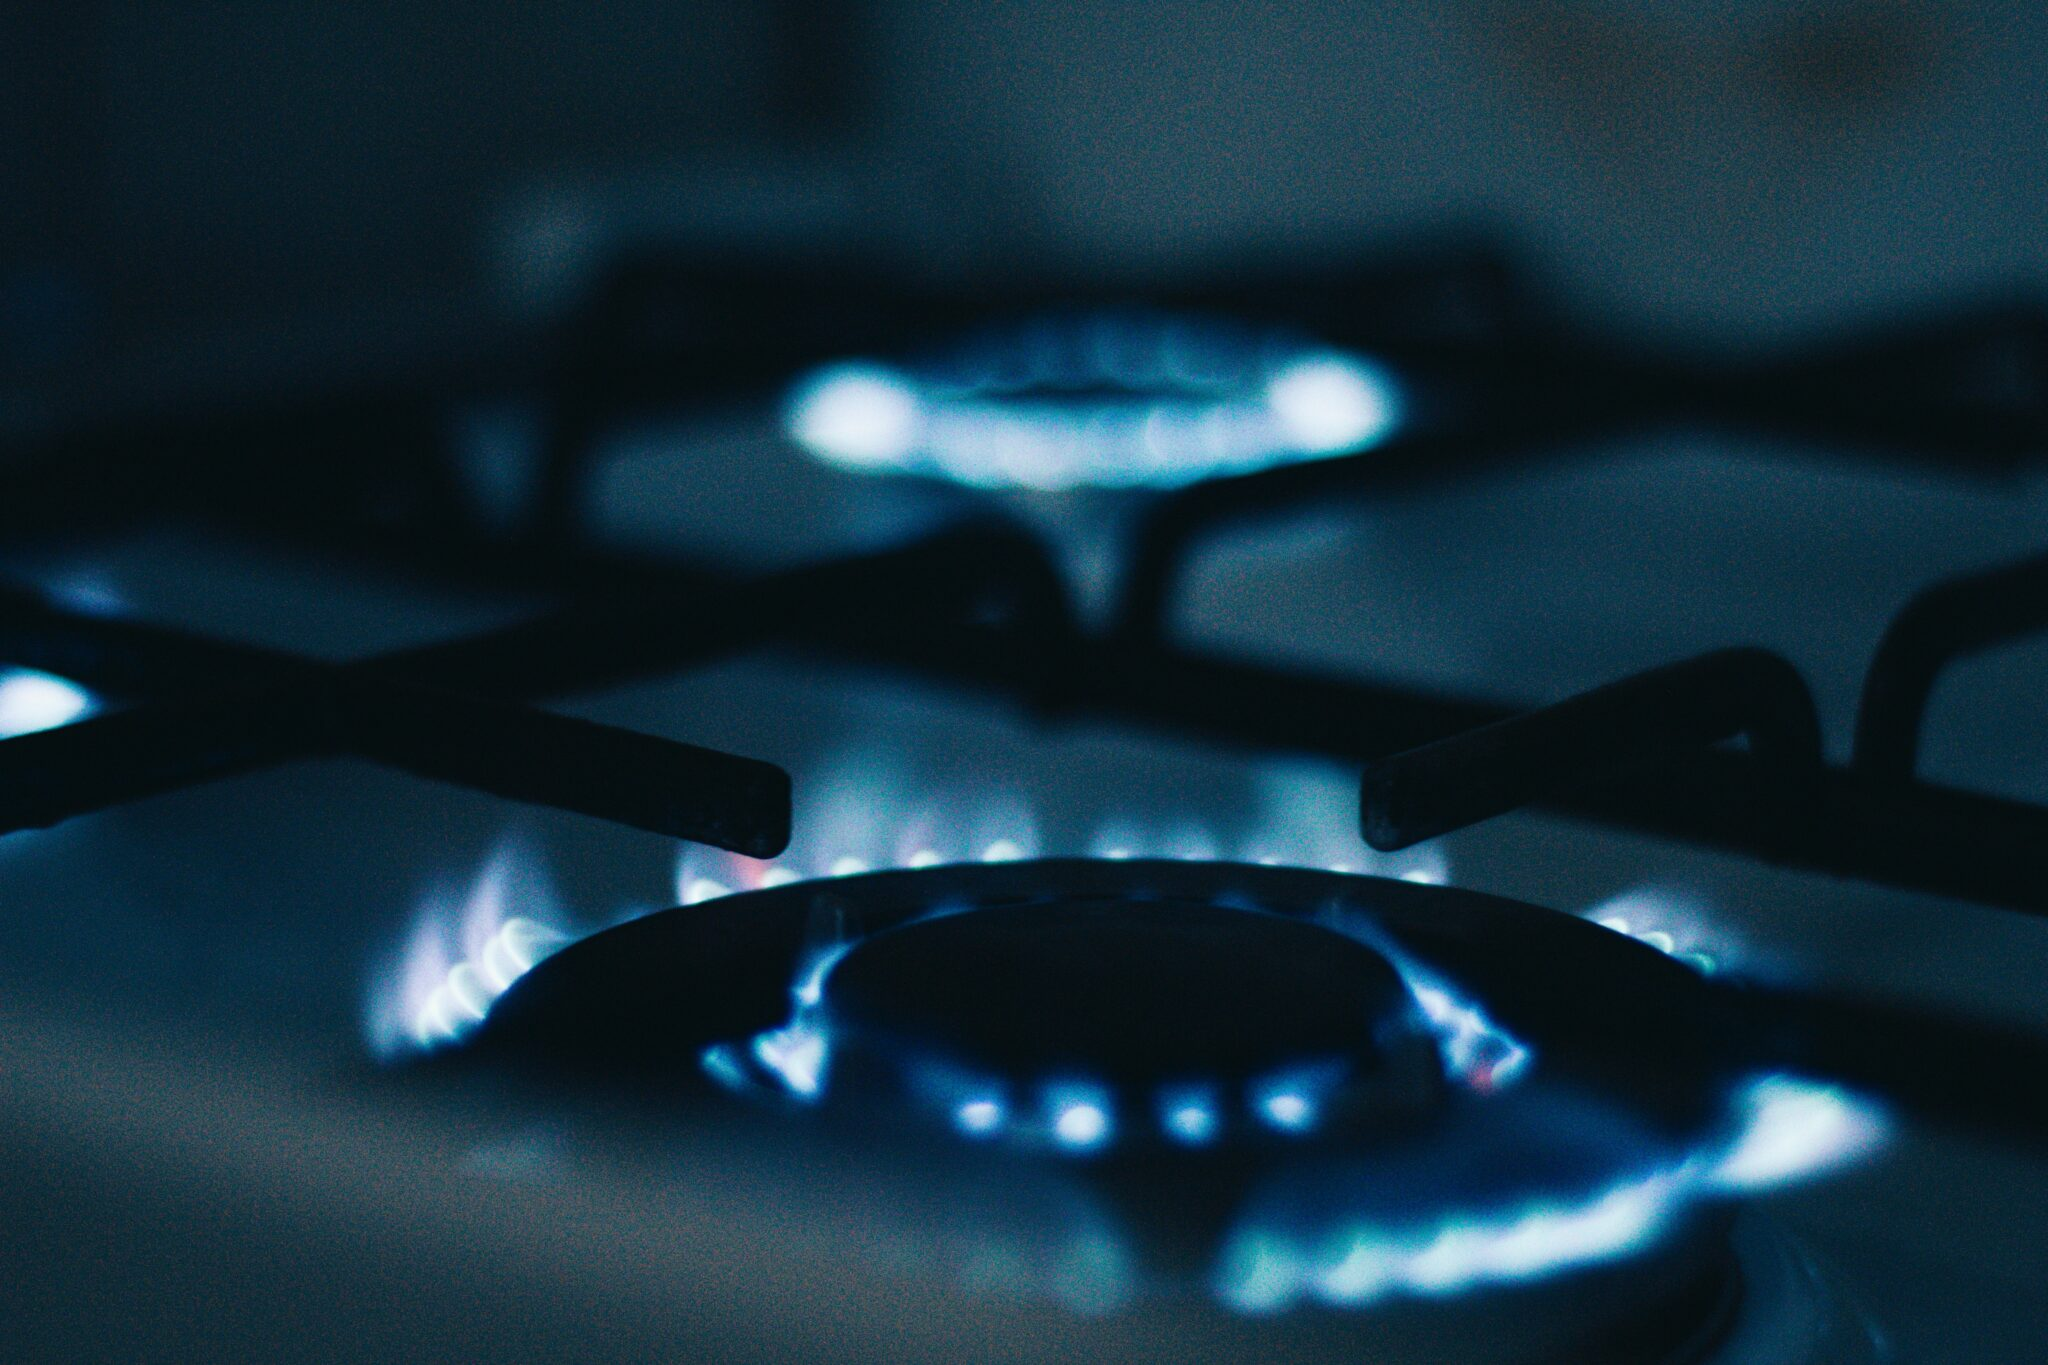 Stainless steel cookware on gas flame element